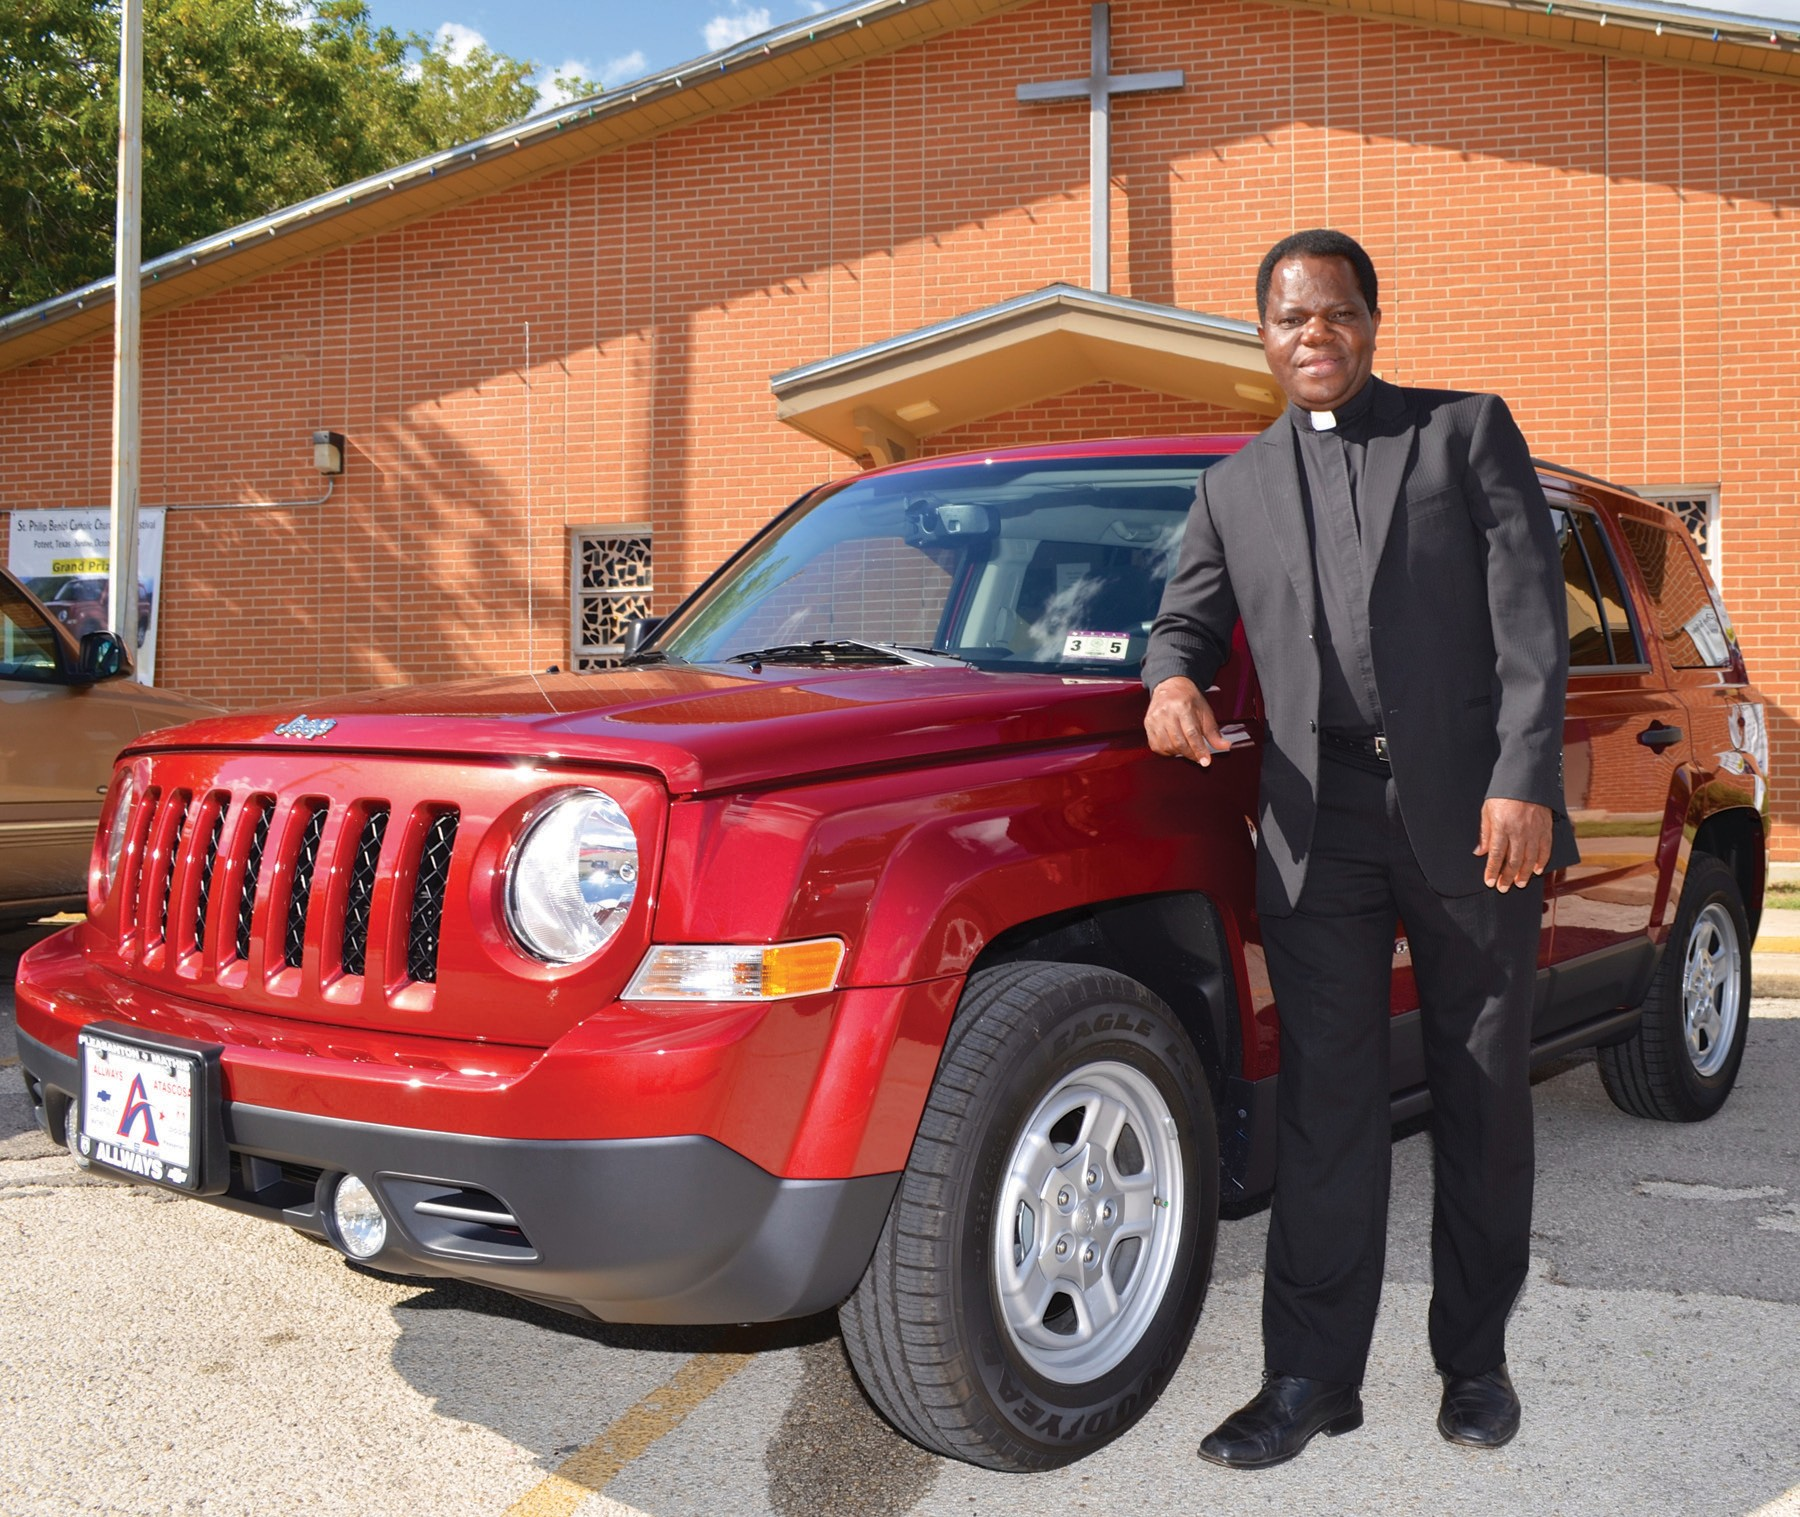 Father Albert Lelo is pictured with the Patriot Sport Jeep that will be raffled during the United Music Festival. He, along with the Festival Committee and the whole community of St. Philip Benizi Catholic Church, would like to invite everyone and their families to come out and show their support to this great event. Proceeds from this festival will go to the long awaited New Parish Hall Facility. No ice chests will be allowed on the grounds.